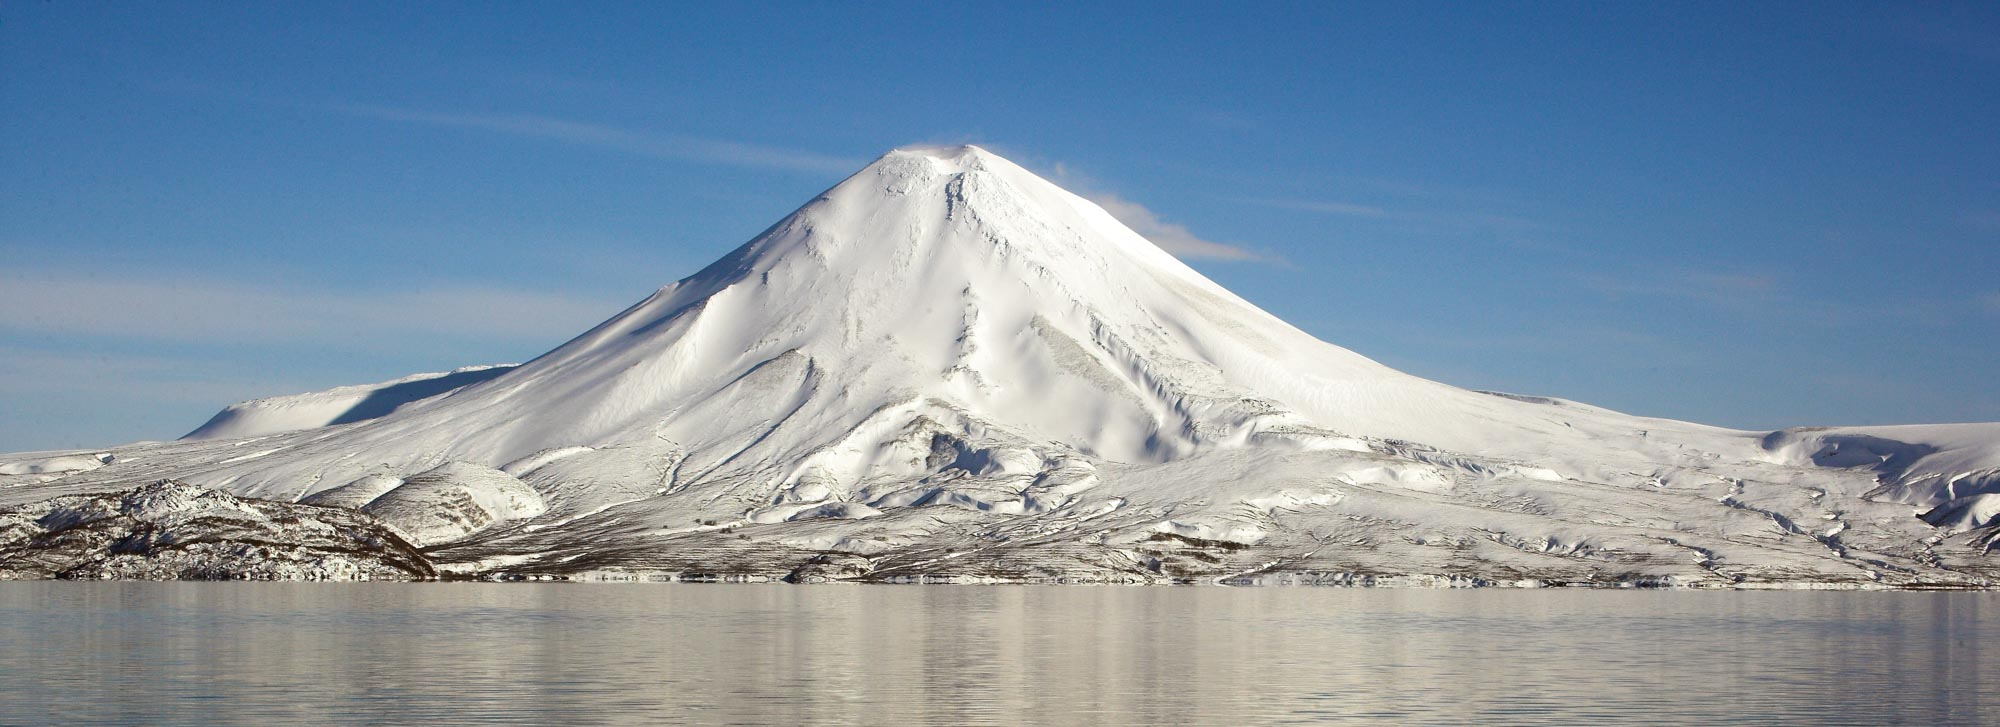 slider_kamchatka_scenery_034